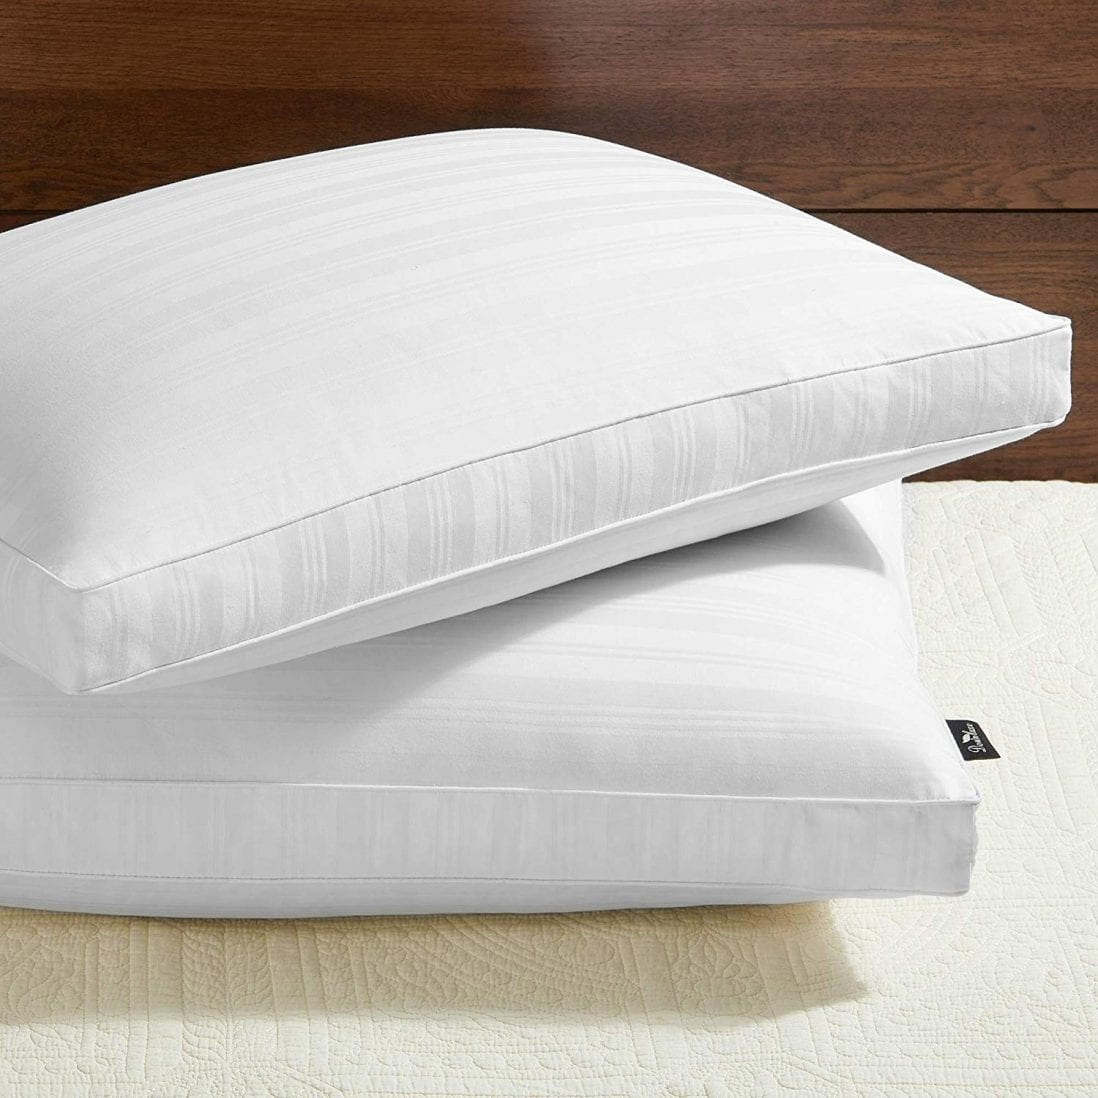 downluxe best organic pillows reviews and buying guide by www.dailysleep.org